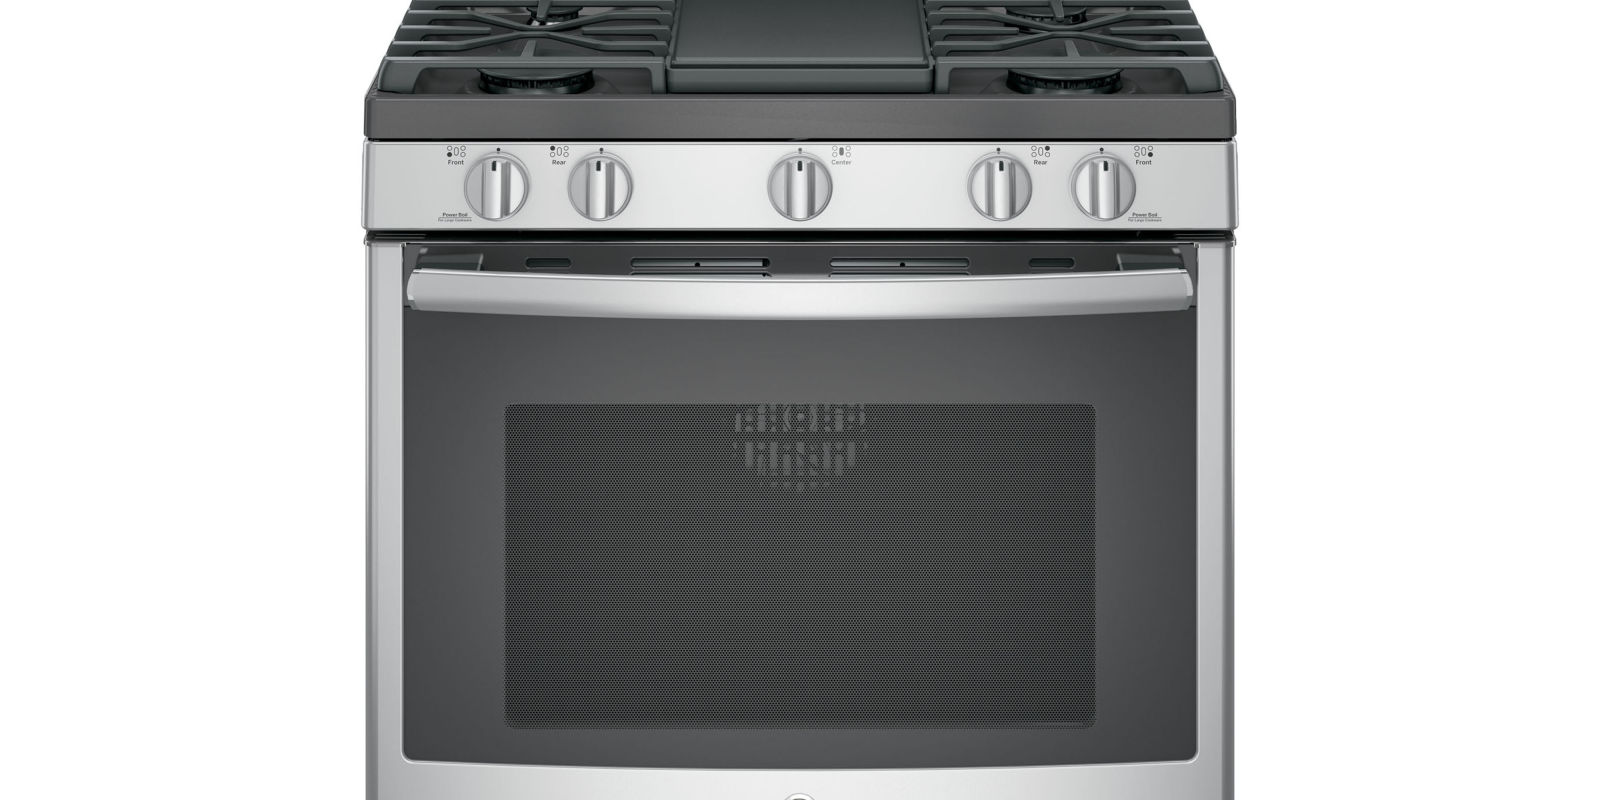 GE Profile Series 30 FreeStanding Gas Convection Range PGB911SEJSS Review Price and Features